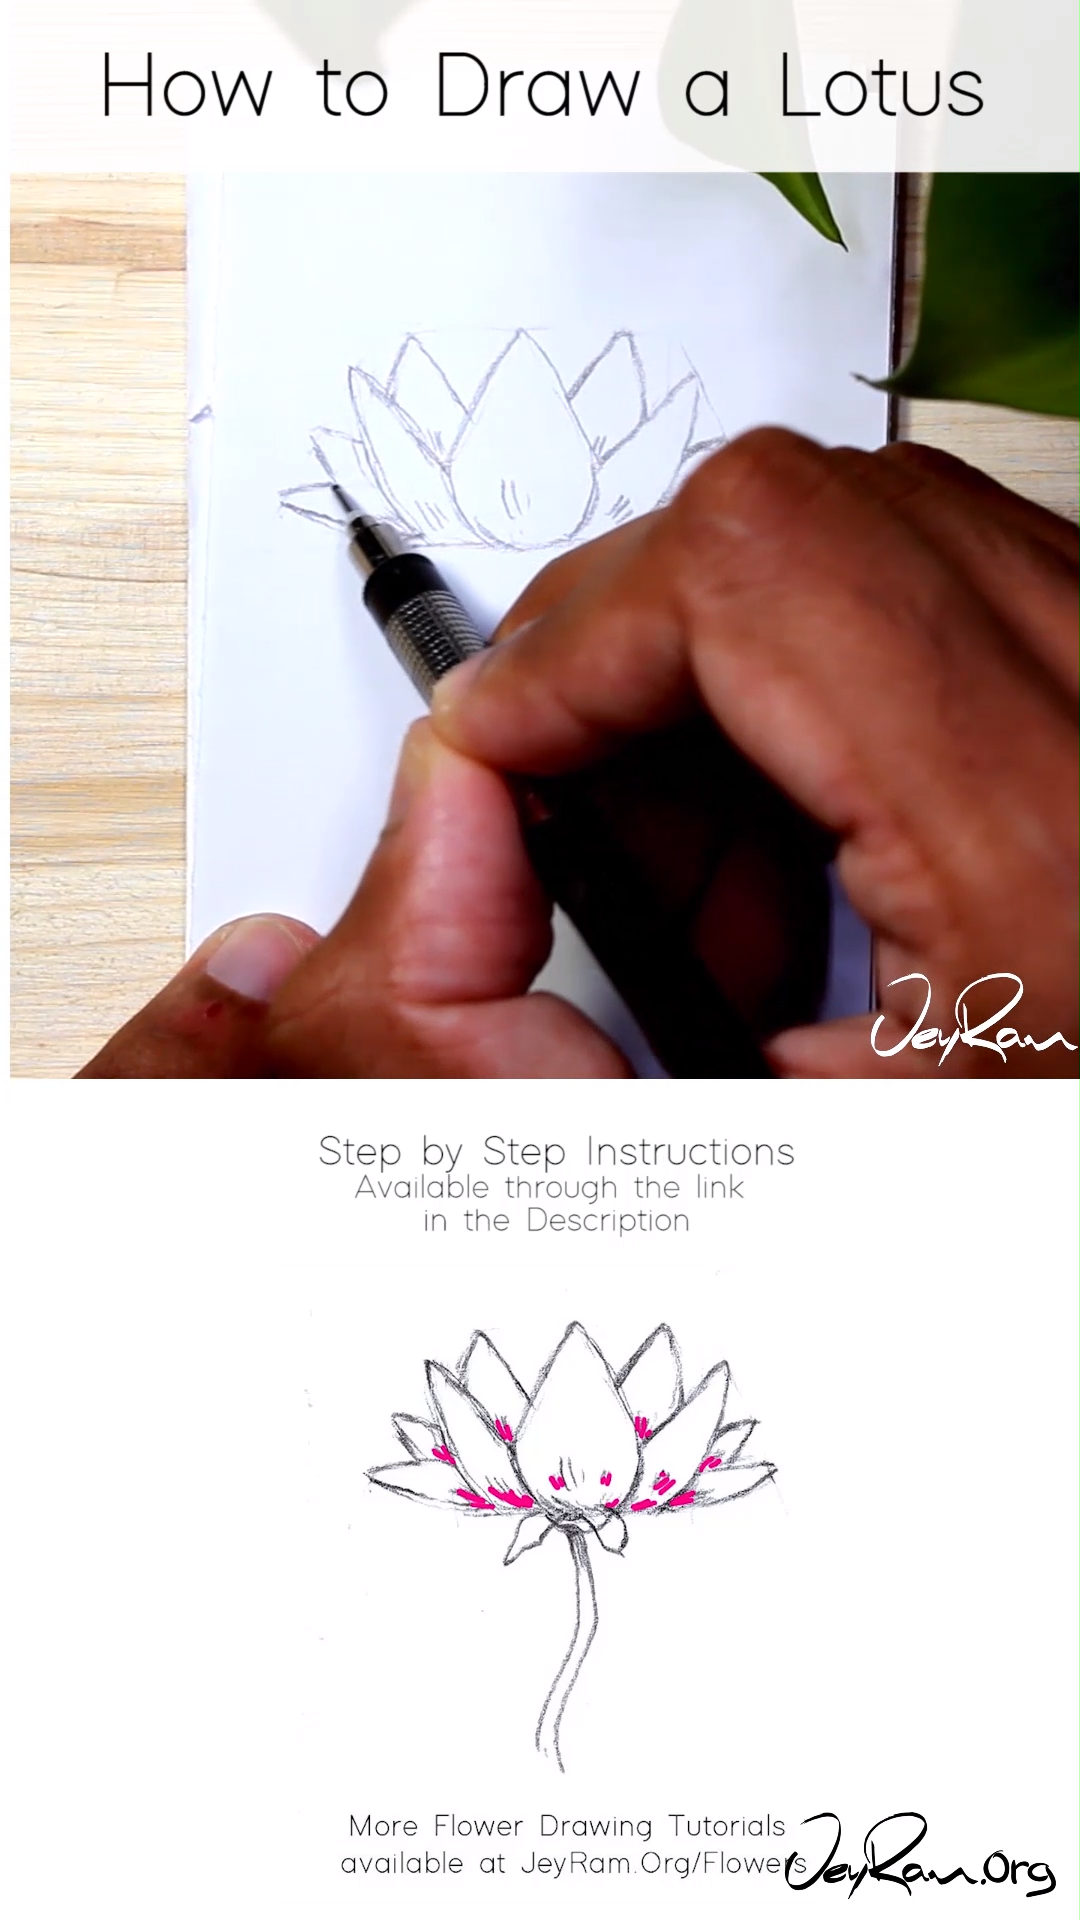 How to Draw a Lotus Flower: Step by Step for Beginners